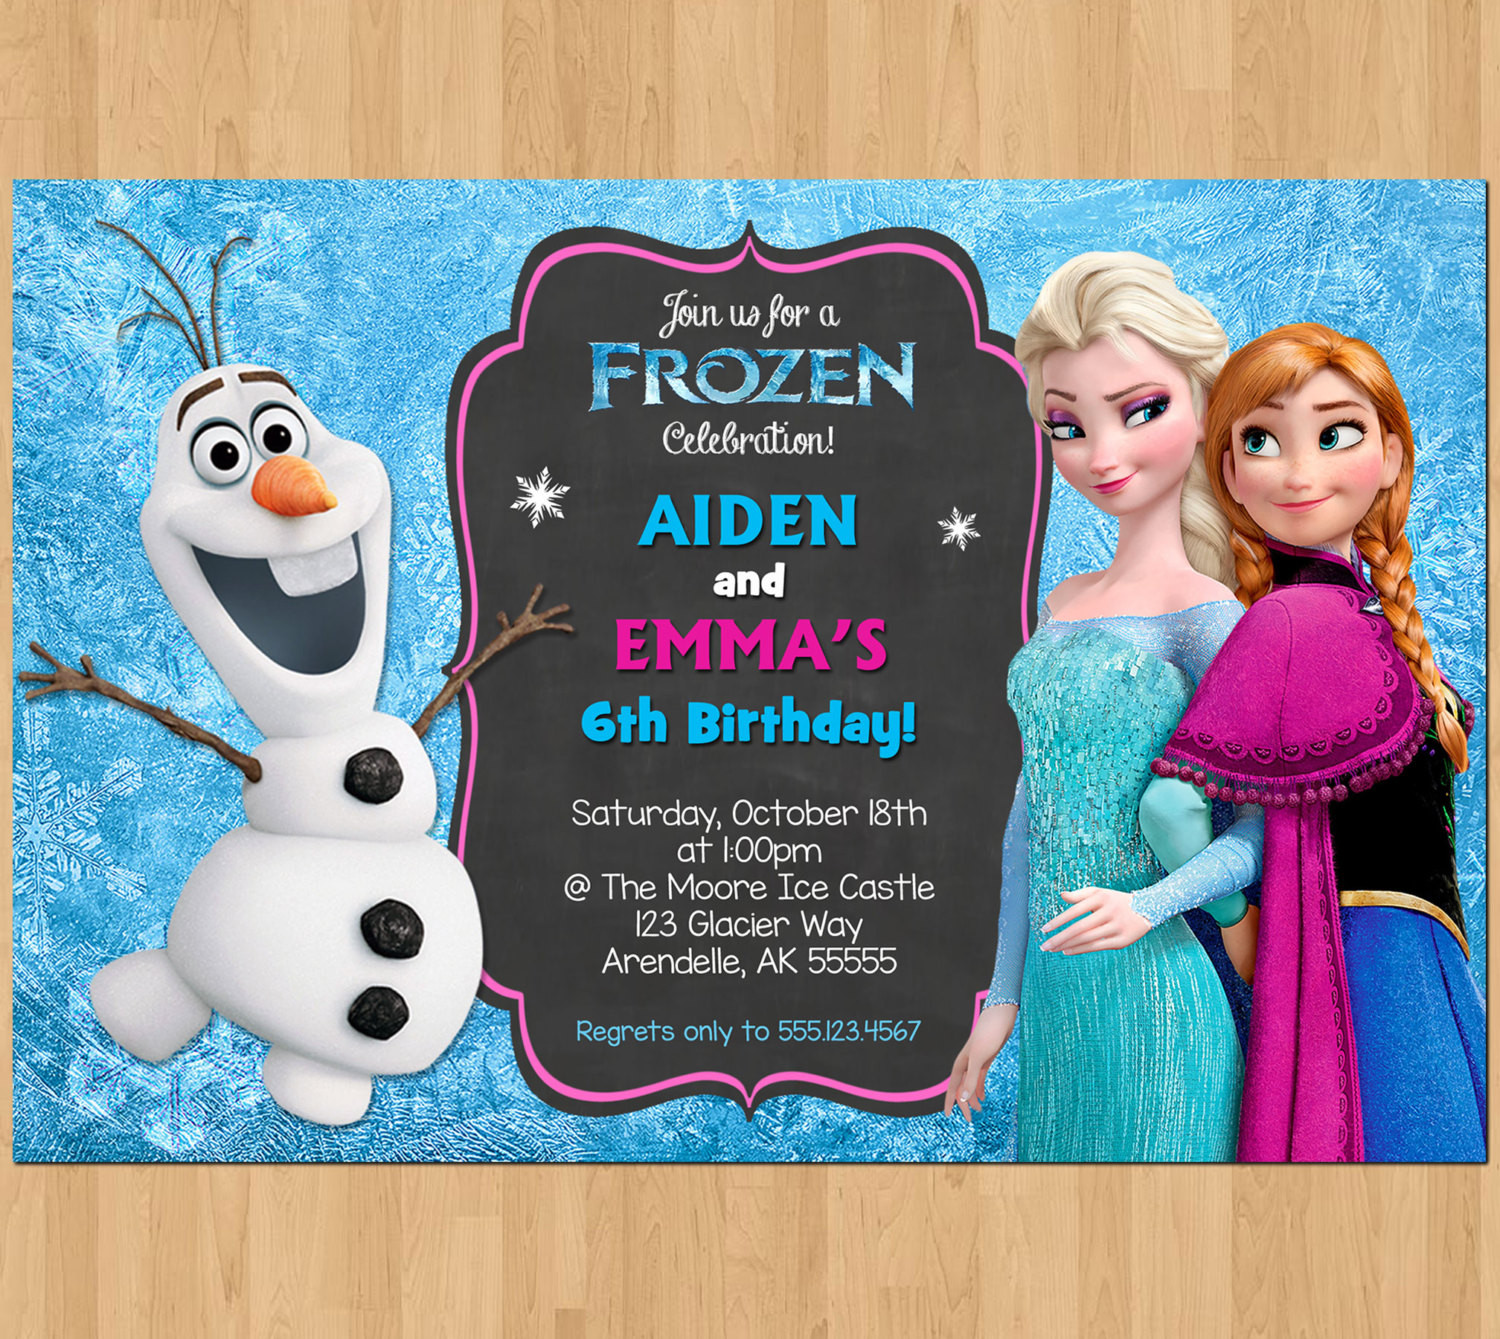 Best ideas about Frozen Birthday Party Invitations . Save or Pin Sibling Birthday Invitation Frozen Invitation Olaf Elsa Anna Now.